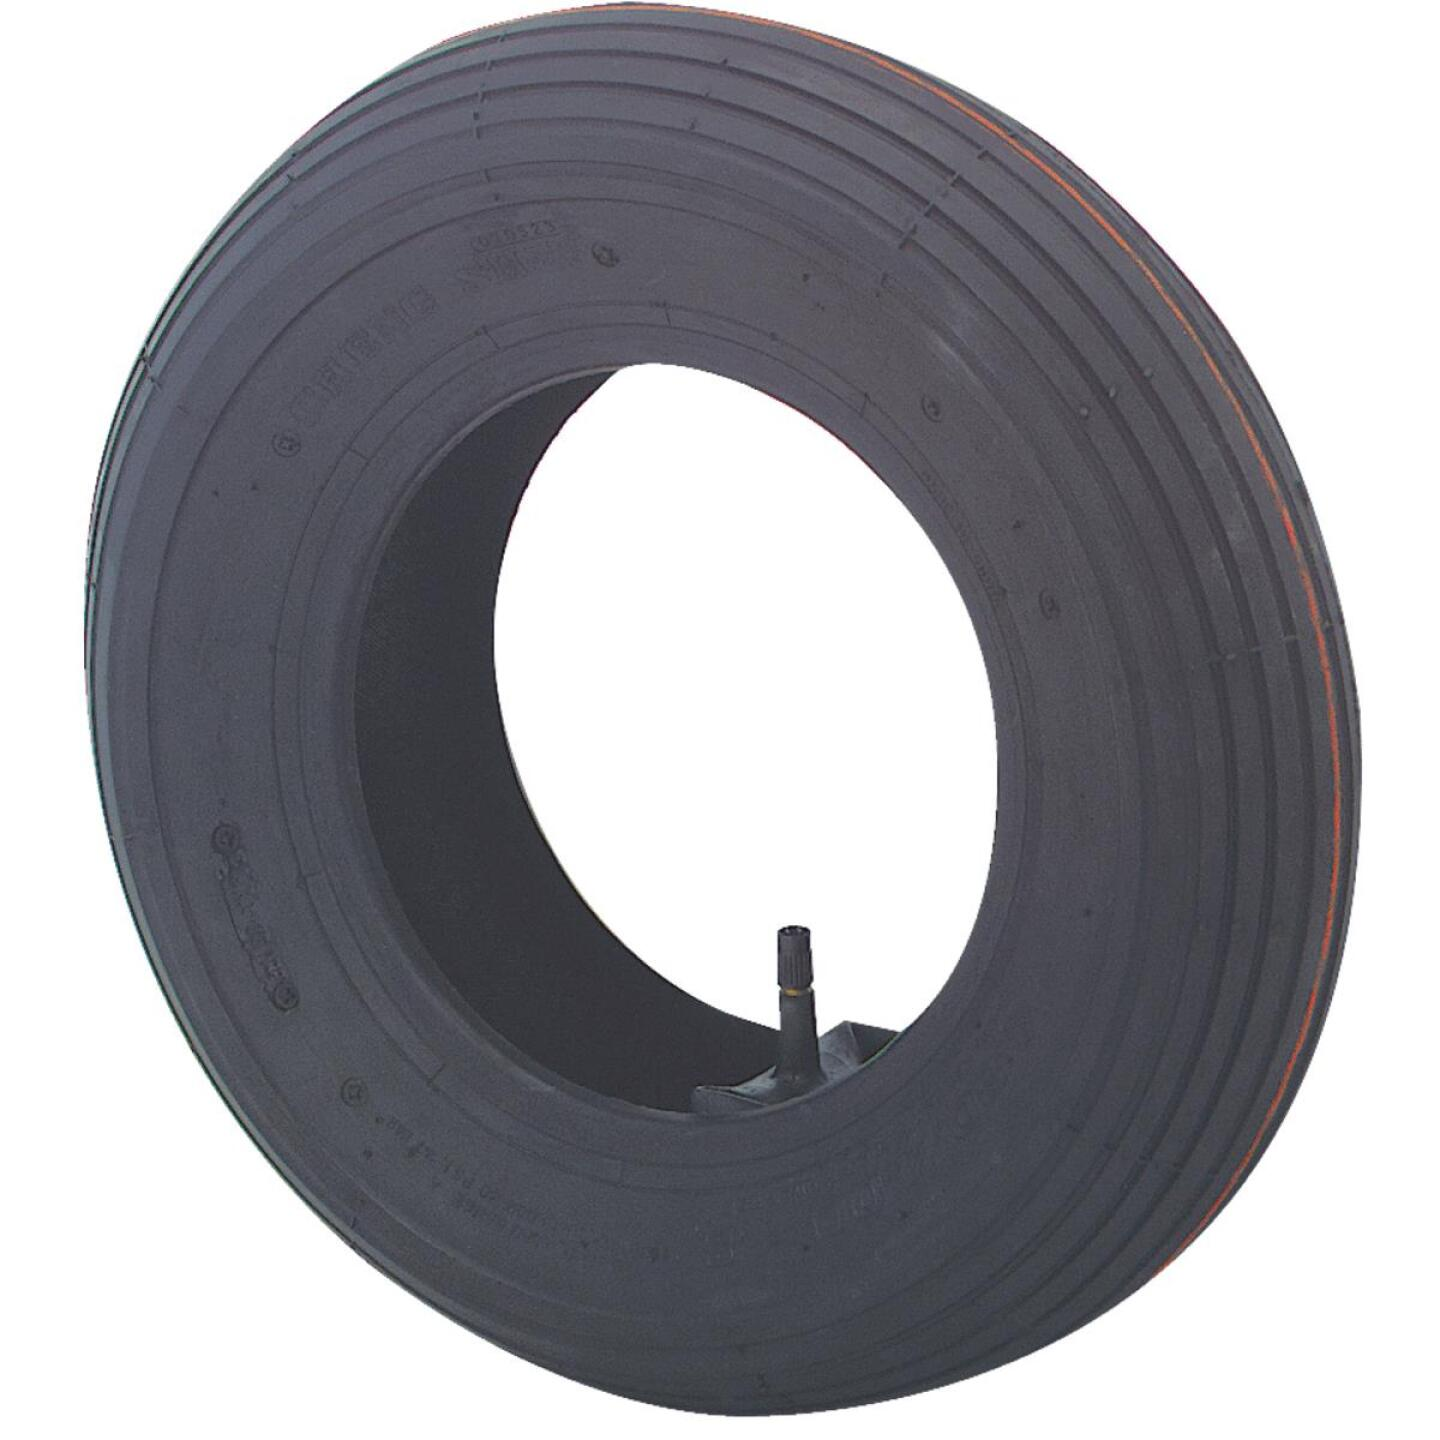 Arnold 480/400 x 8 In. Tire & Tube Combination Image 1